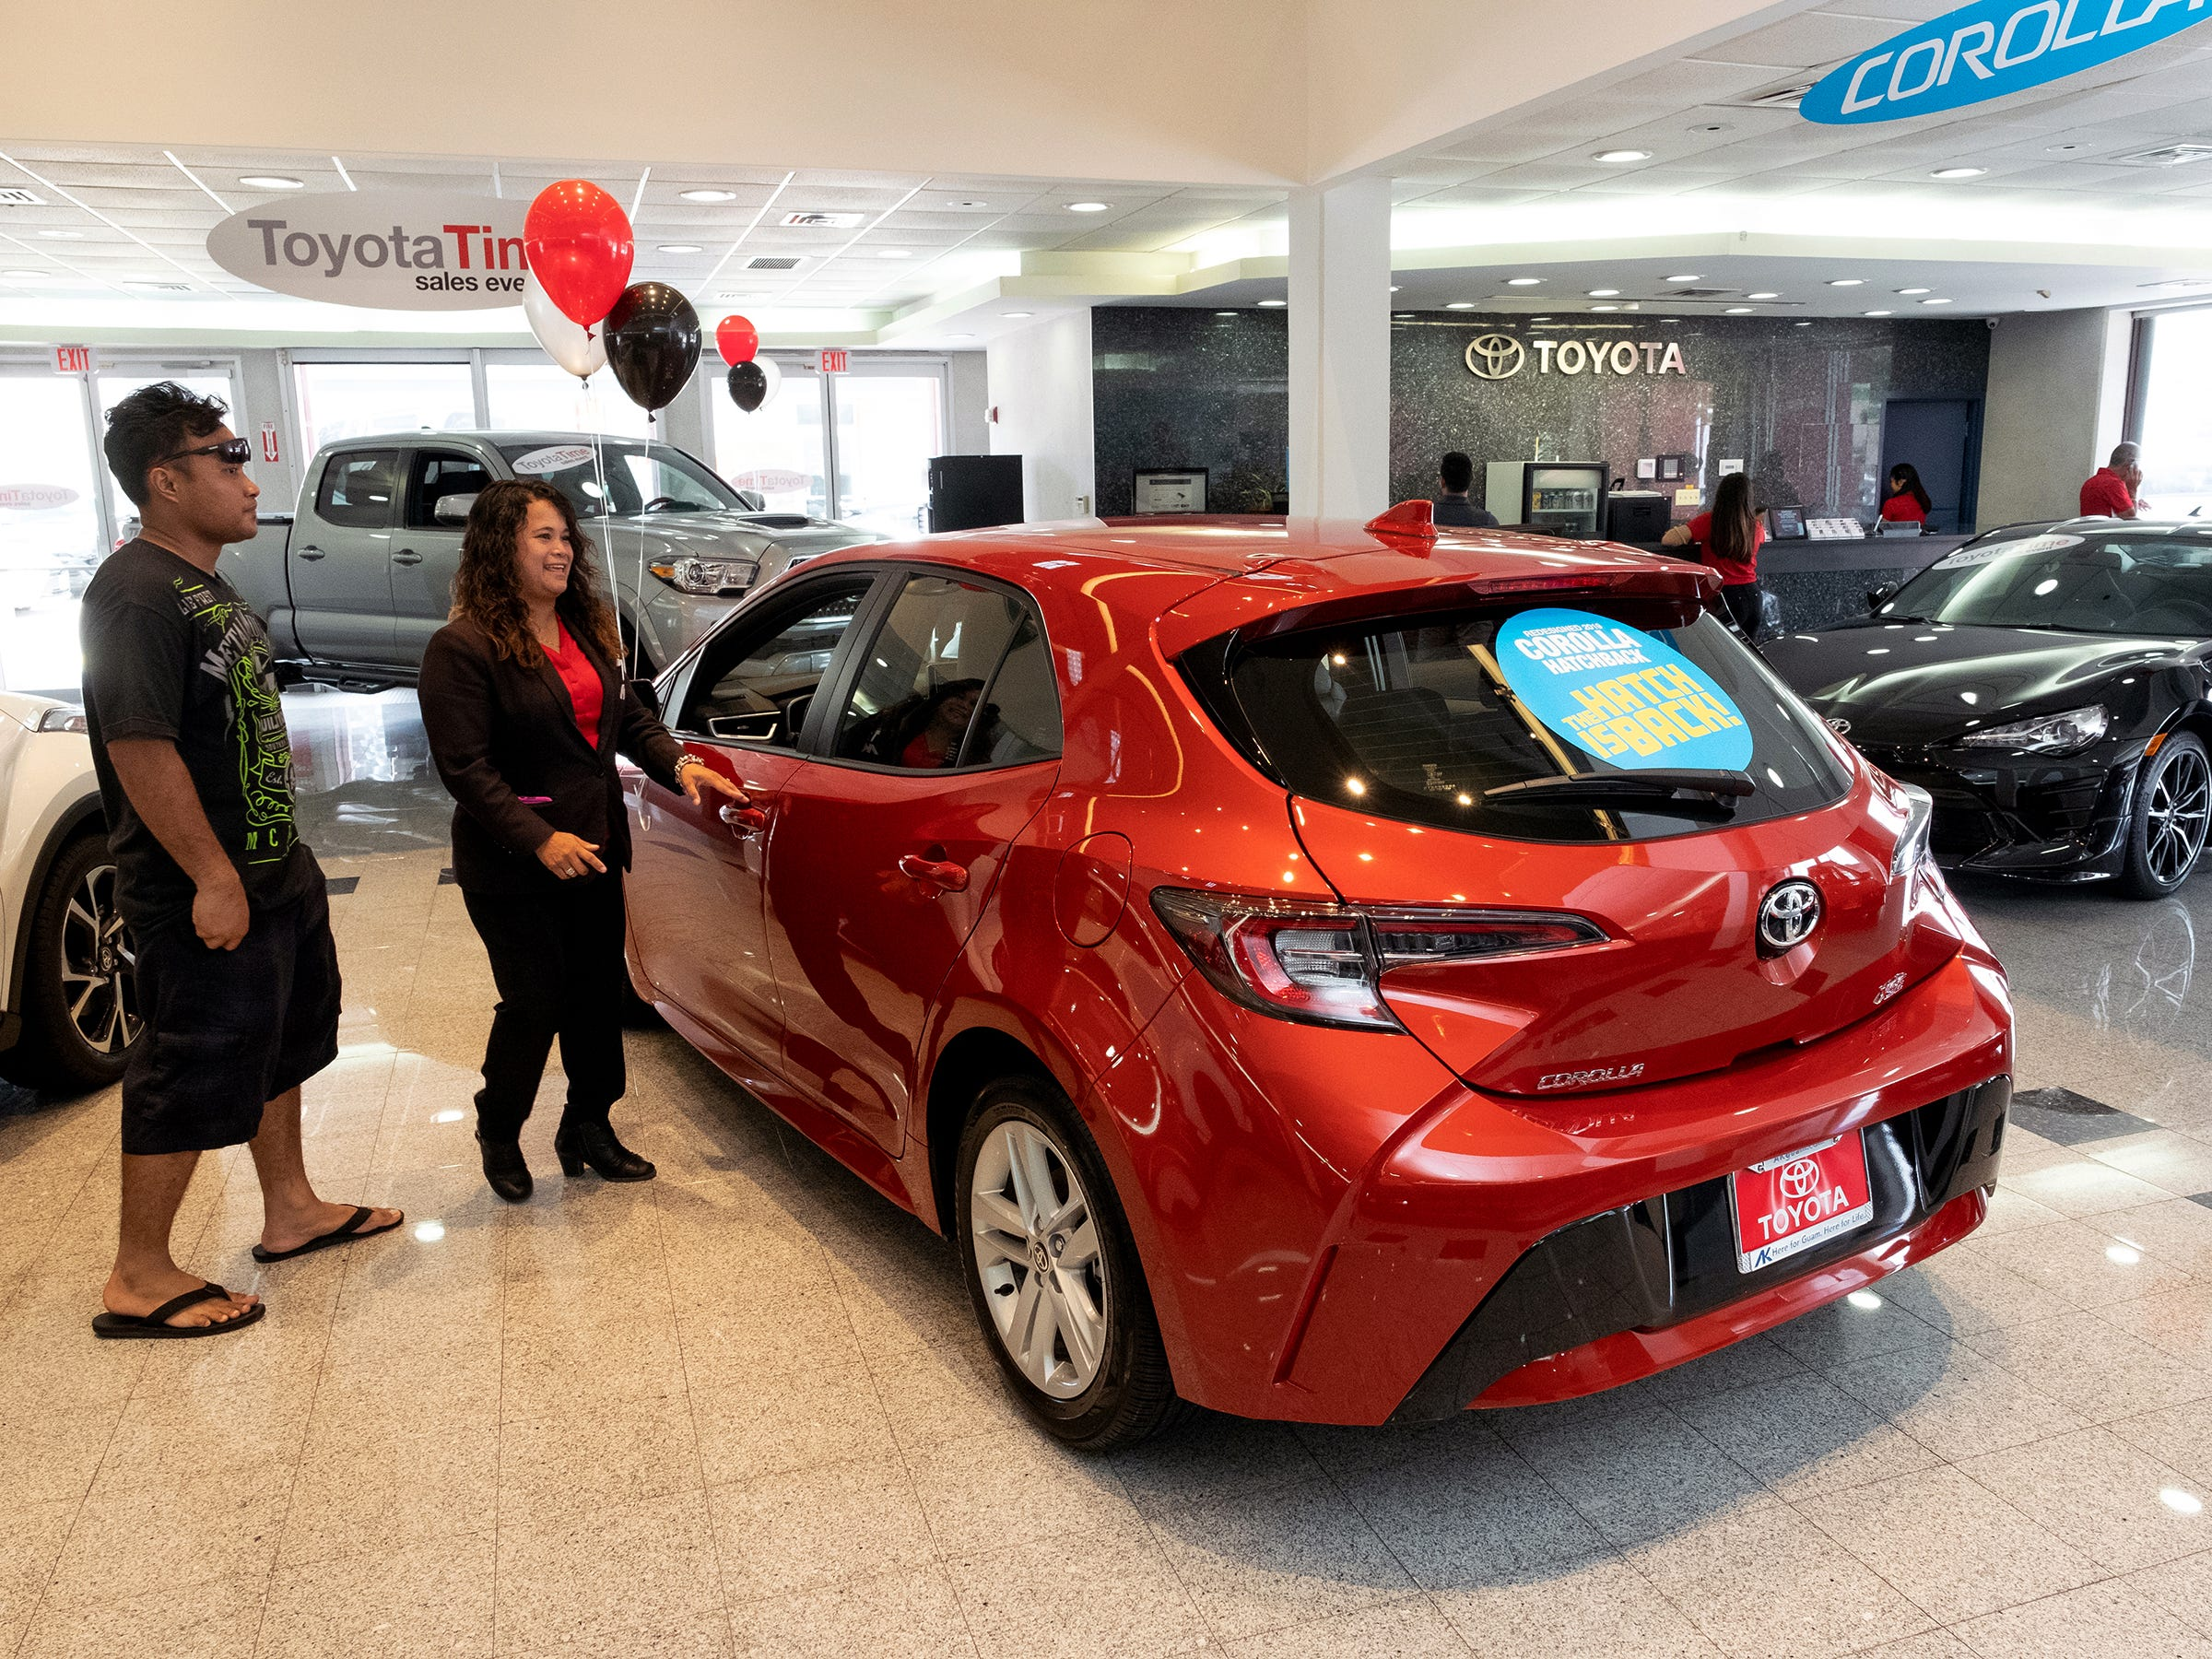 Mona Cing, a sales associate for Atkins Kroll Toyota shows the 2019 Toyota Corolla hatchback to Andrew Milfith of Tamuning in the showroom Sept. 8, 2018.